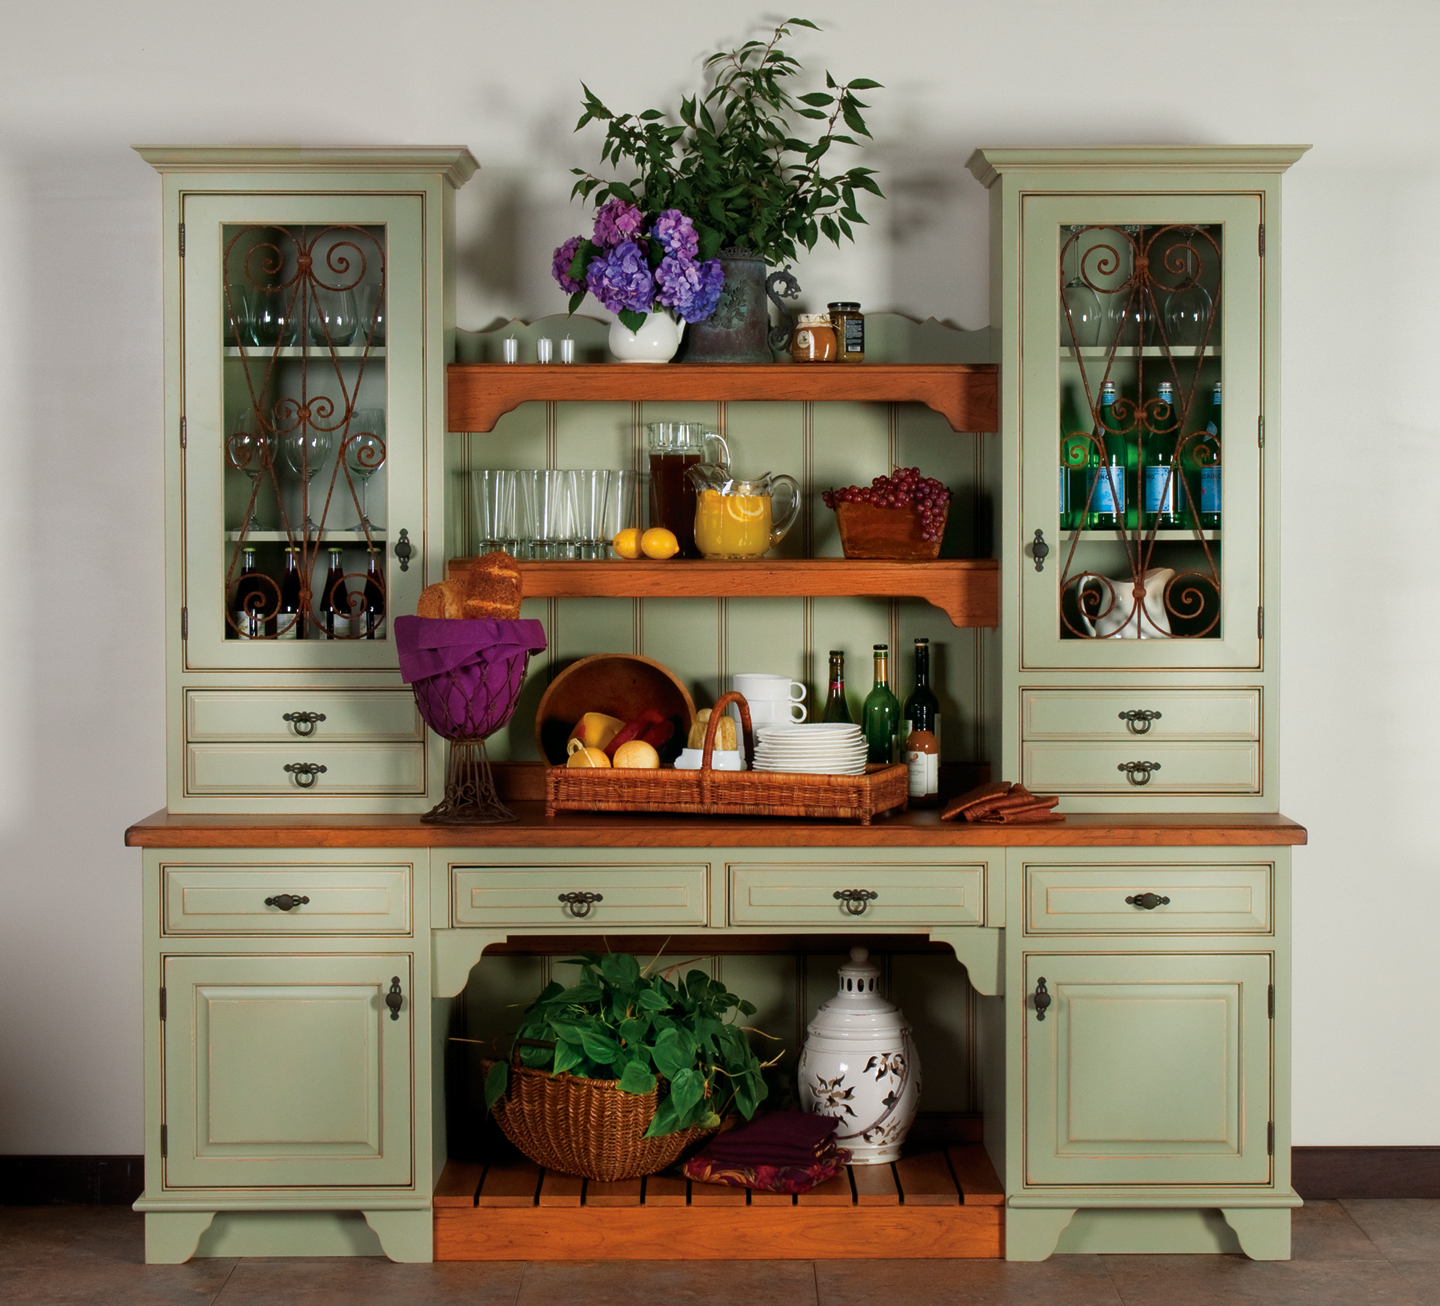 Custom Cabinetry with Old World Style